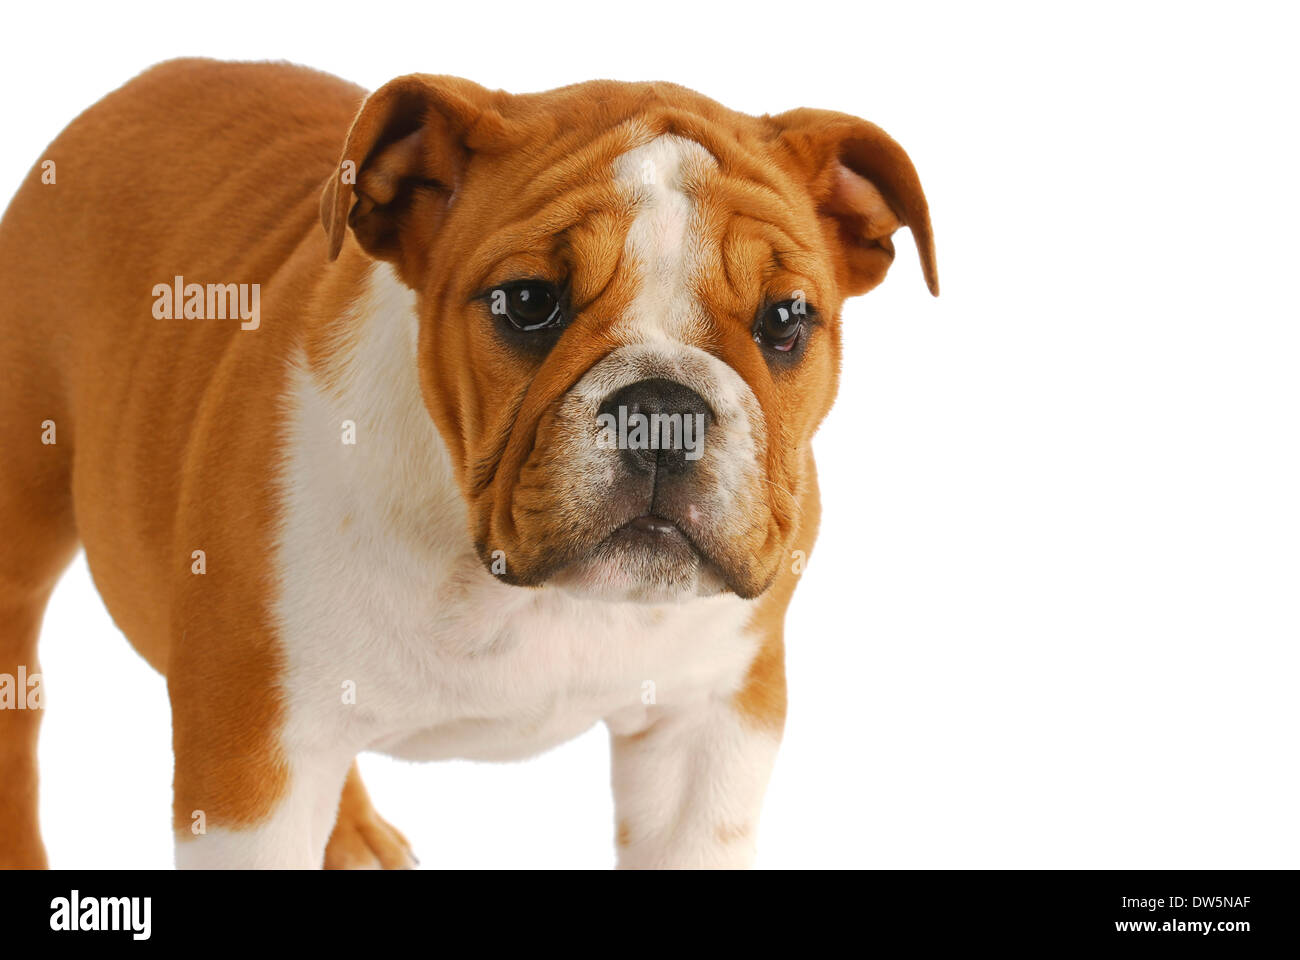 Cute Puppy English Bulldog Puppy Standing Looking At Viewer On Stock Photo Alamy